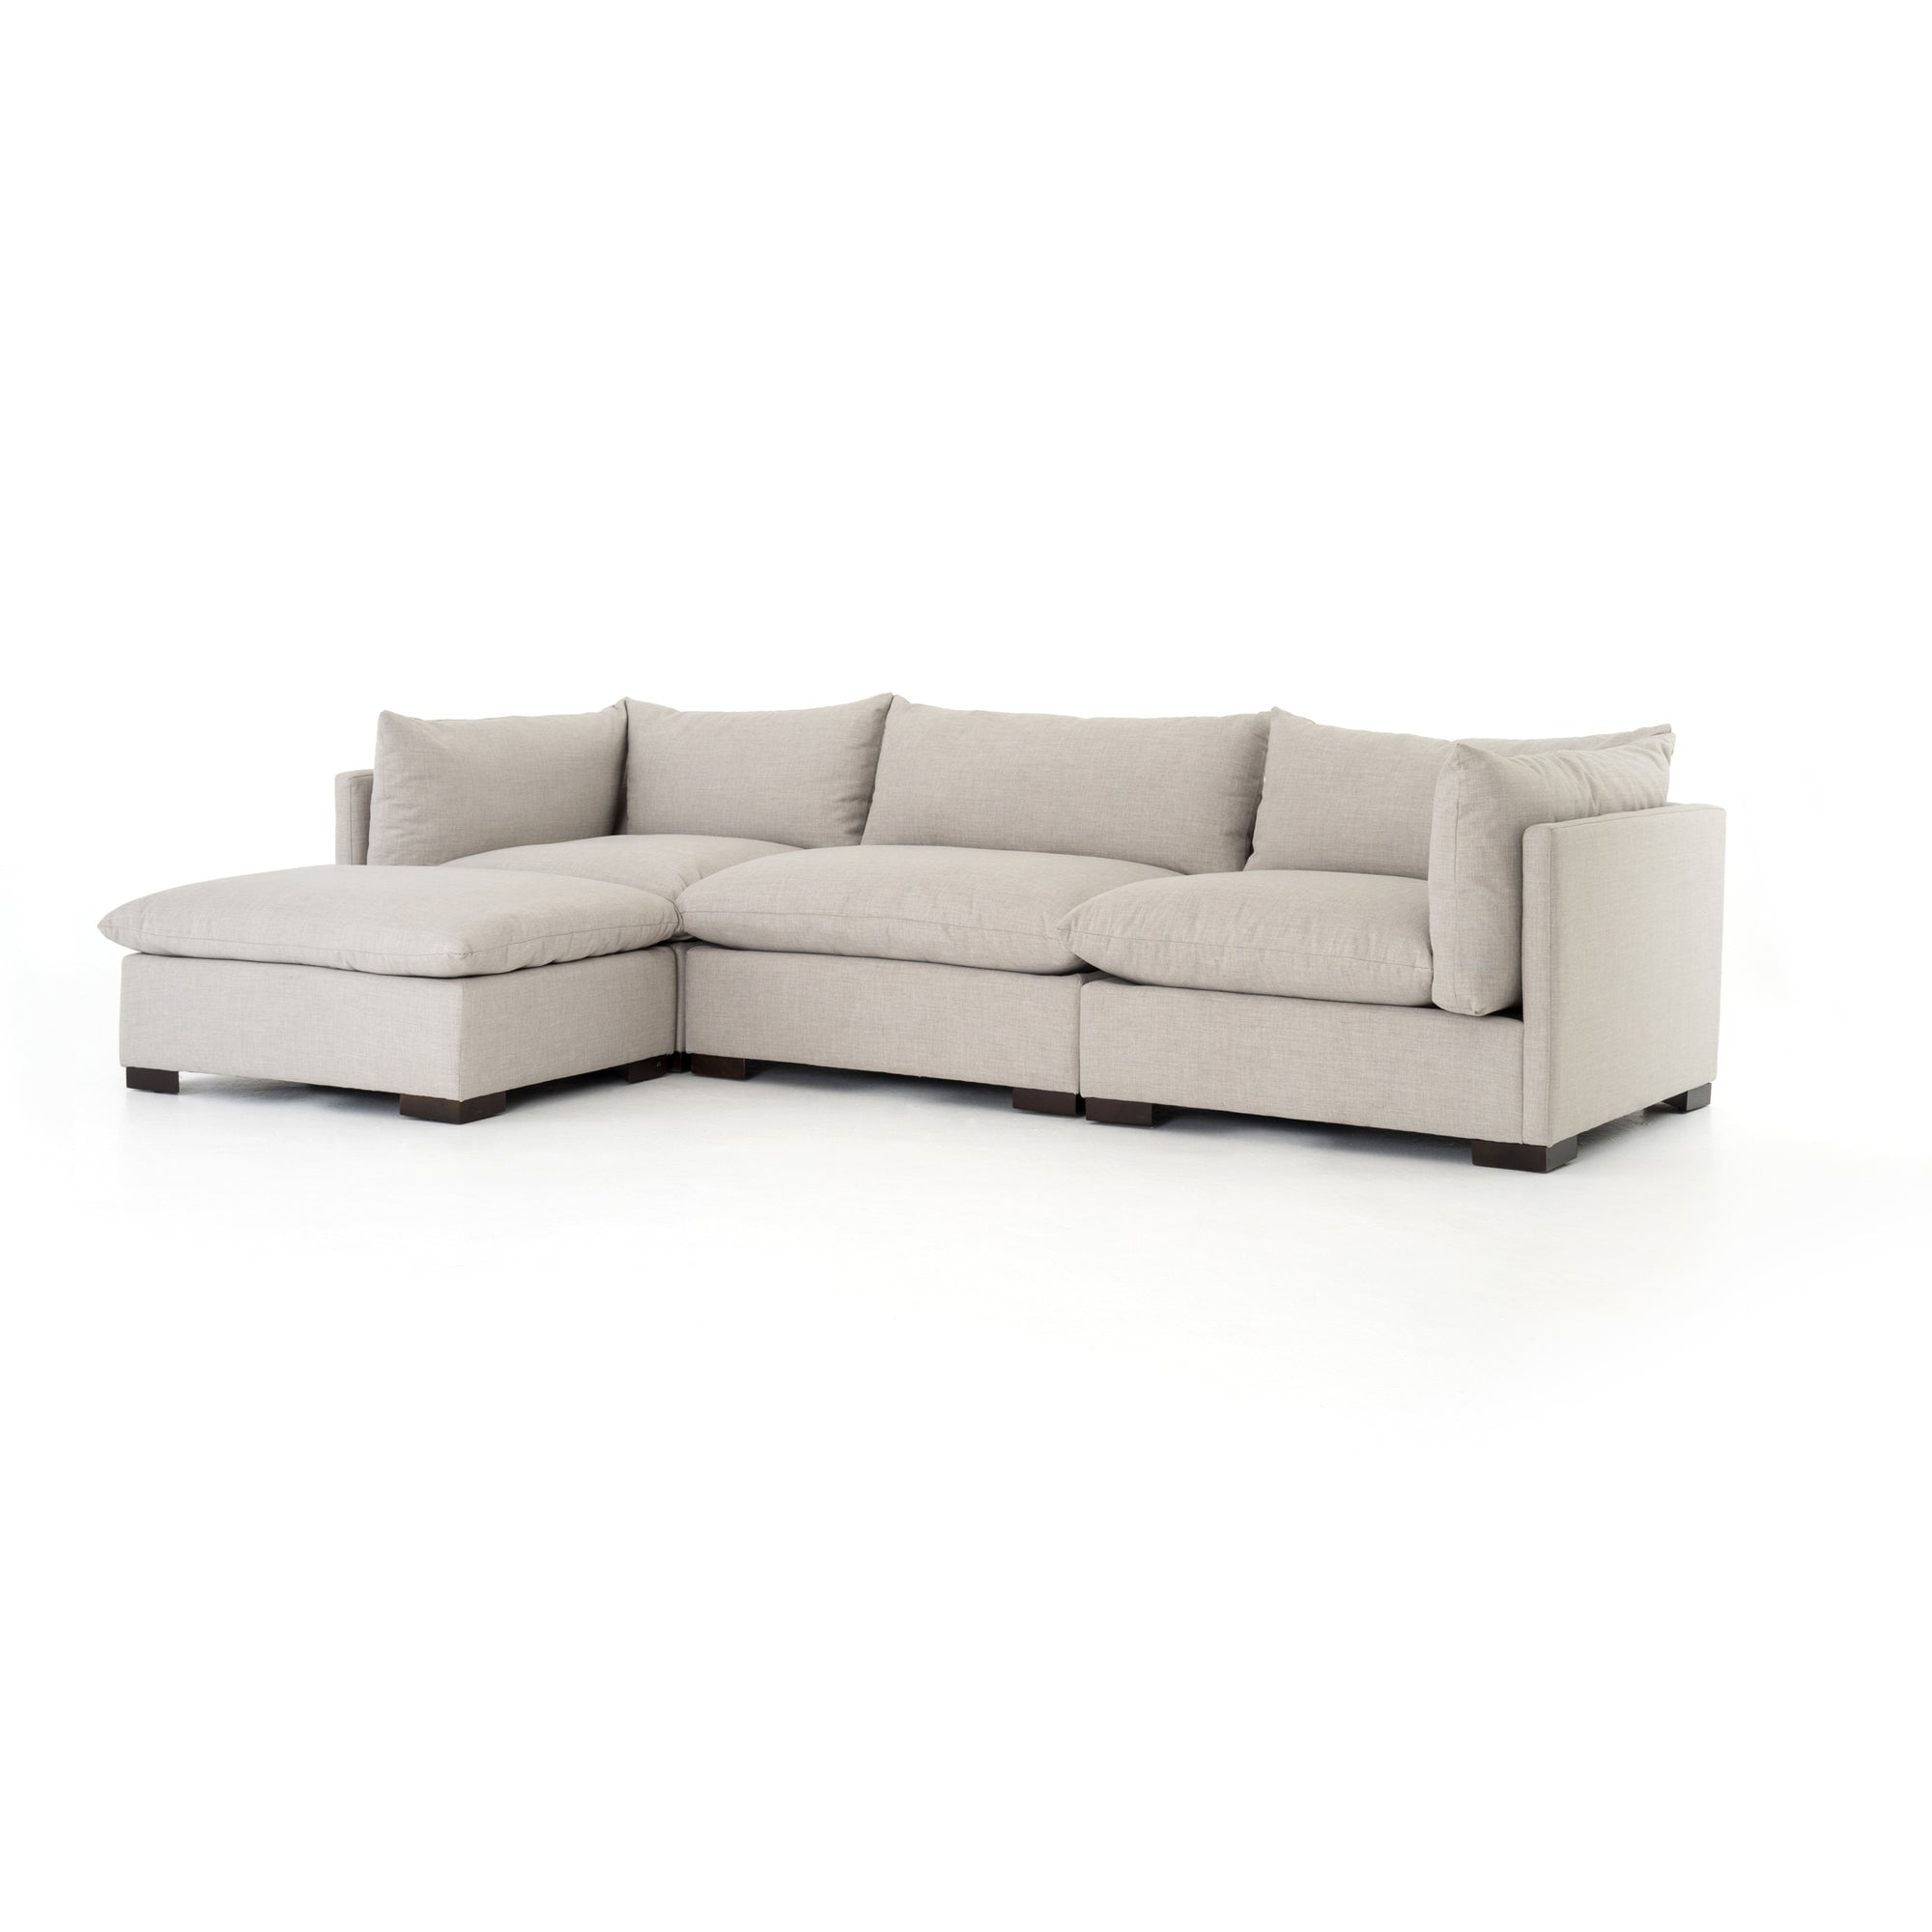 Westwood 3 - Pc Sectional W/ Ottoman - Bm